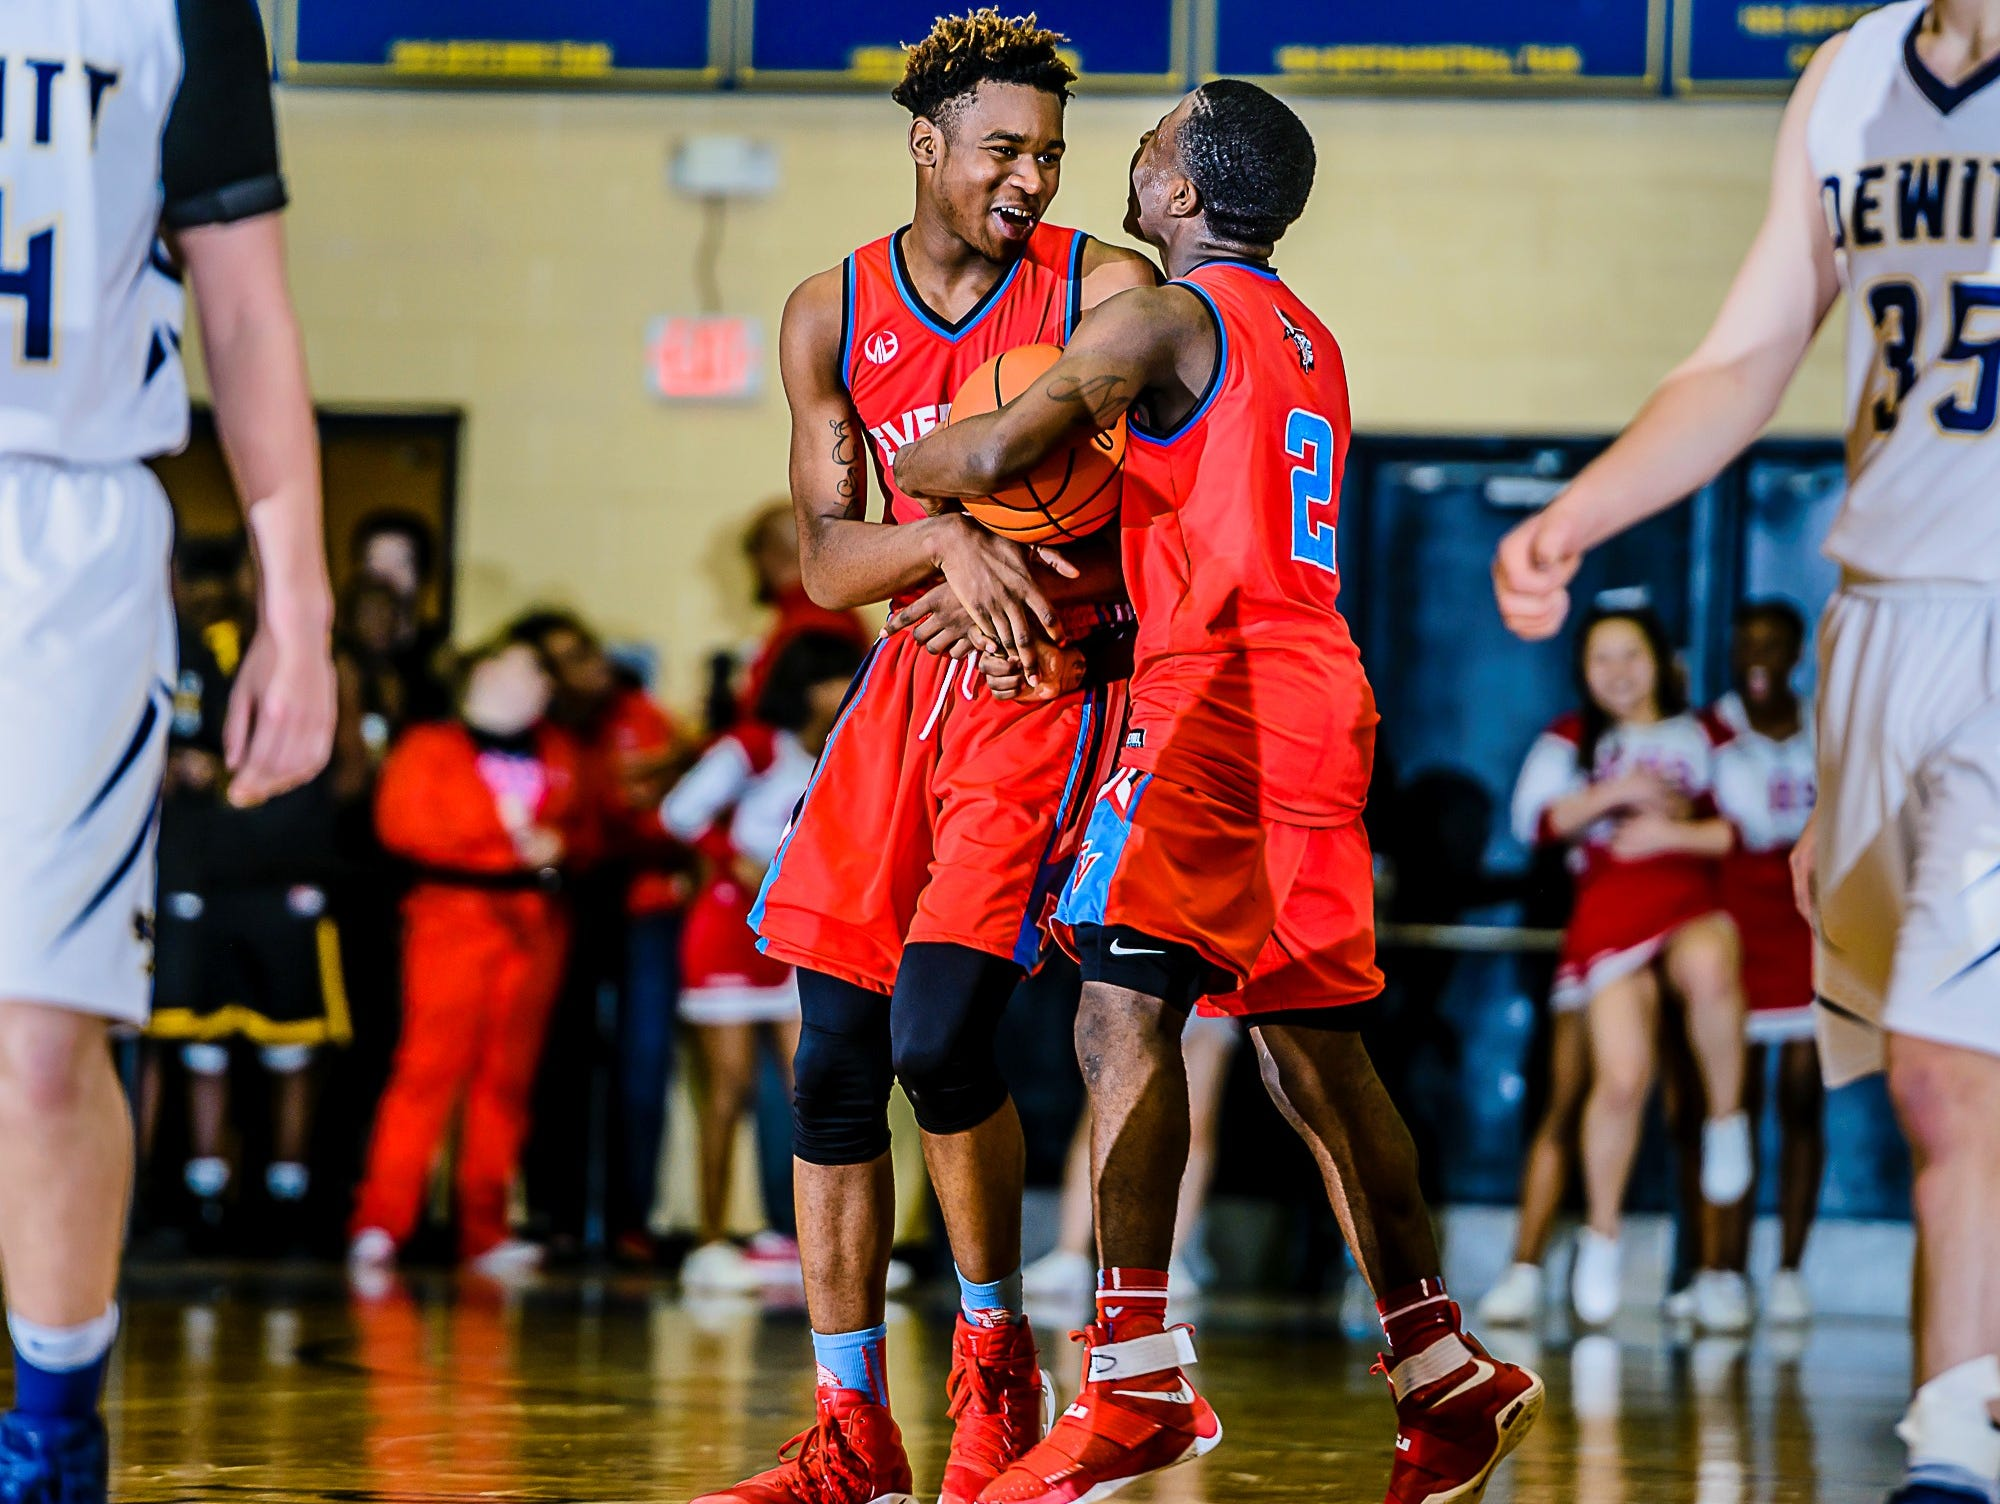 Marquez Gordon ,left, of Everett celebrates with teammate Nyreel Powell ,2, after Powell grabbed a rebound and was fouled with 9.6 seconds remaining in their Class A district semifinal game with DeWitt and Everett leading 49-47 Wednesday March 8, 2017 at Don Johnson Fieldhouse in Lansing.